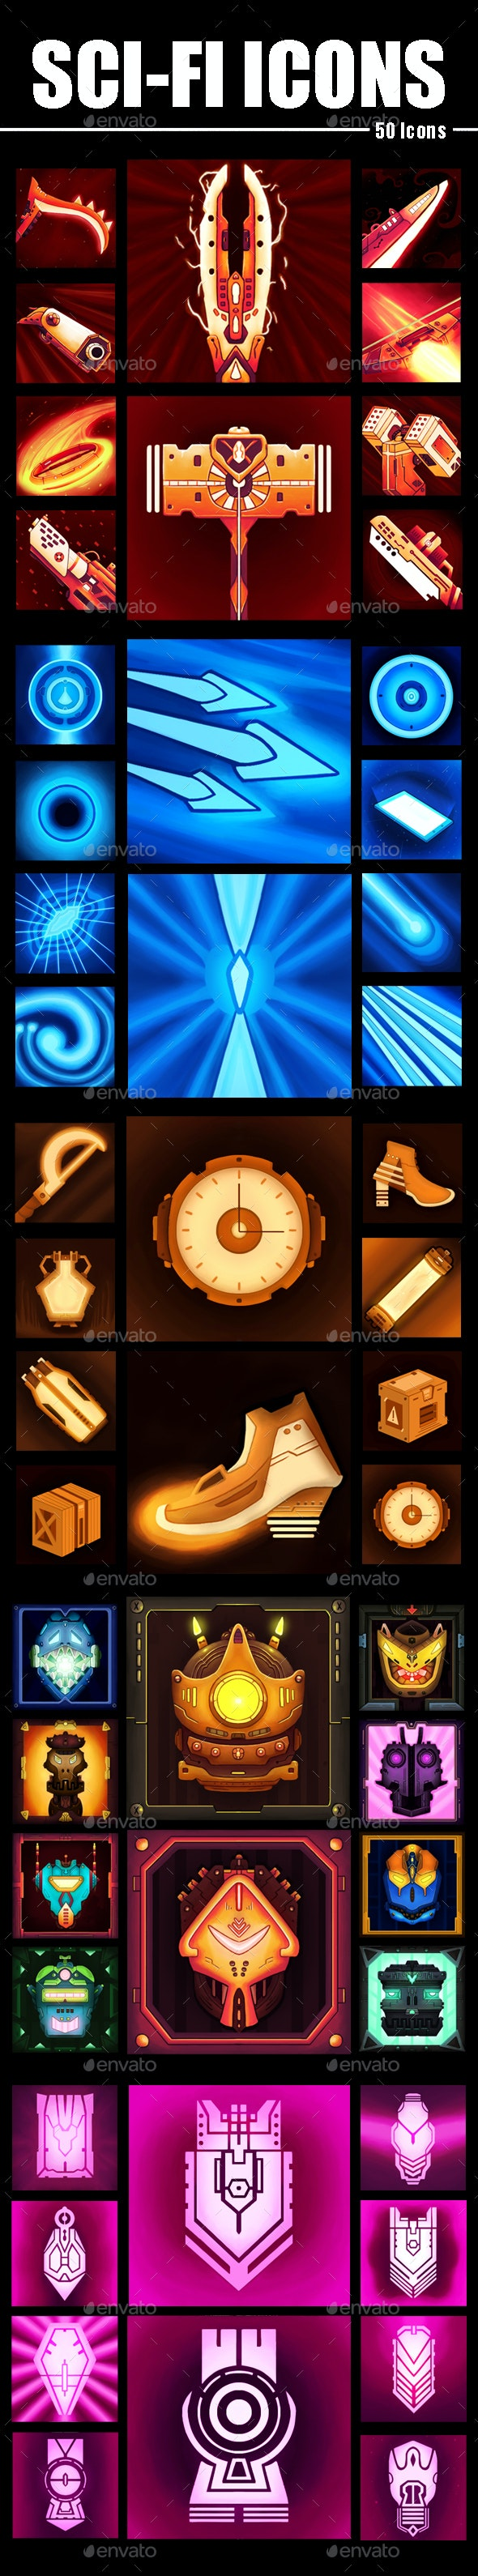 Sci-Fi Icon Designs - Miscellaneous Game Assets